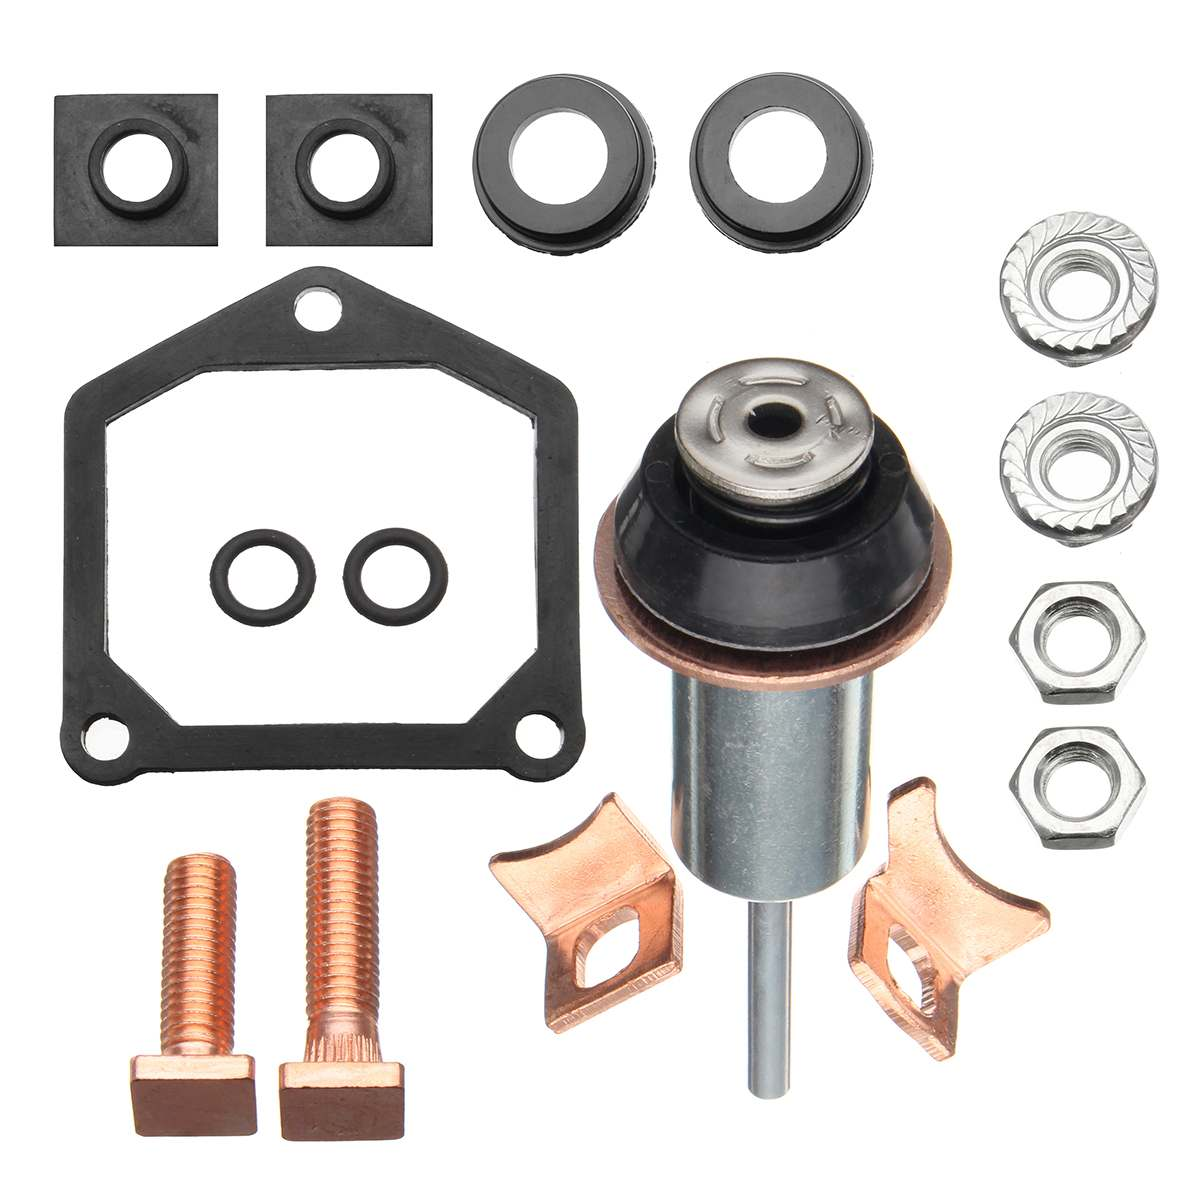 High quality Starter Solenoid Repair Rebuild Kit Set Contacts Parts For Toyota for SubaruHigh quality Starter Solenoid Repair Rebuild Kit Set Contacts Parts For Toyota for Subaru